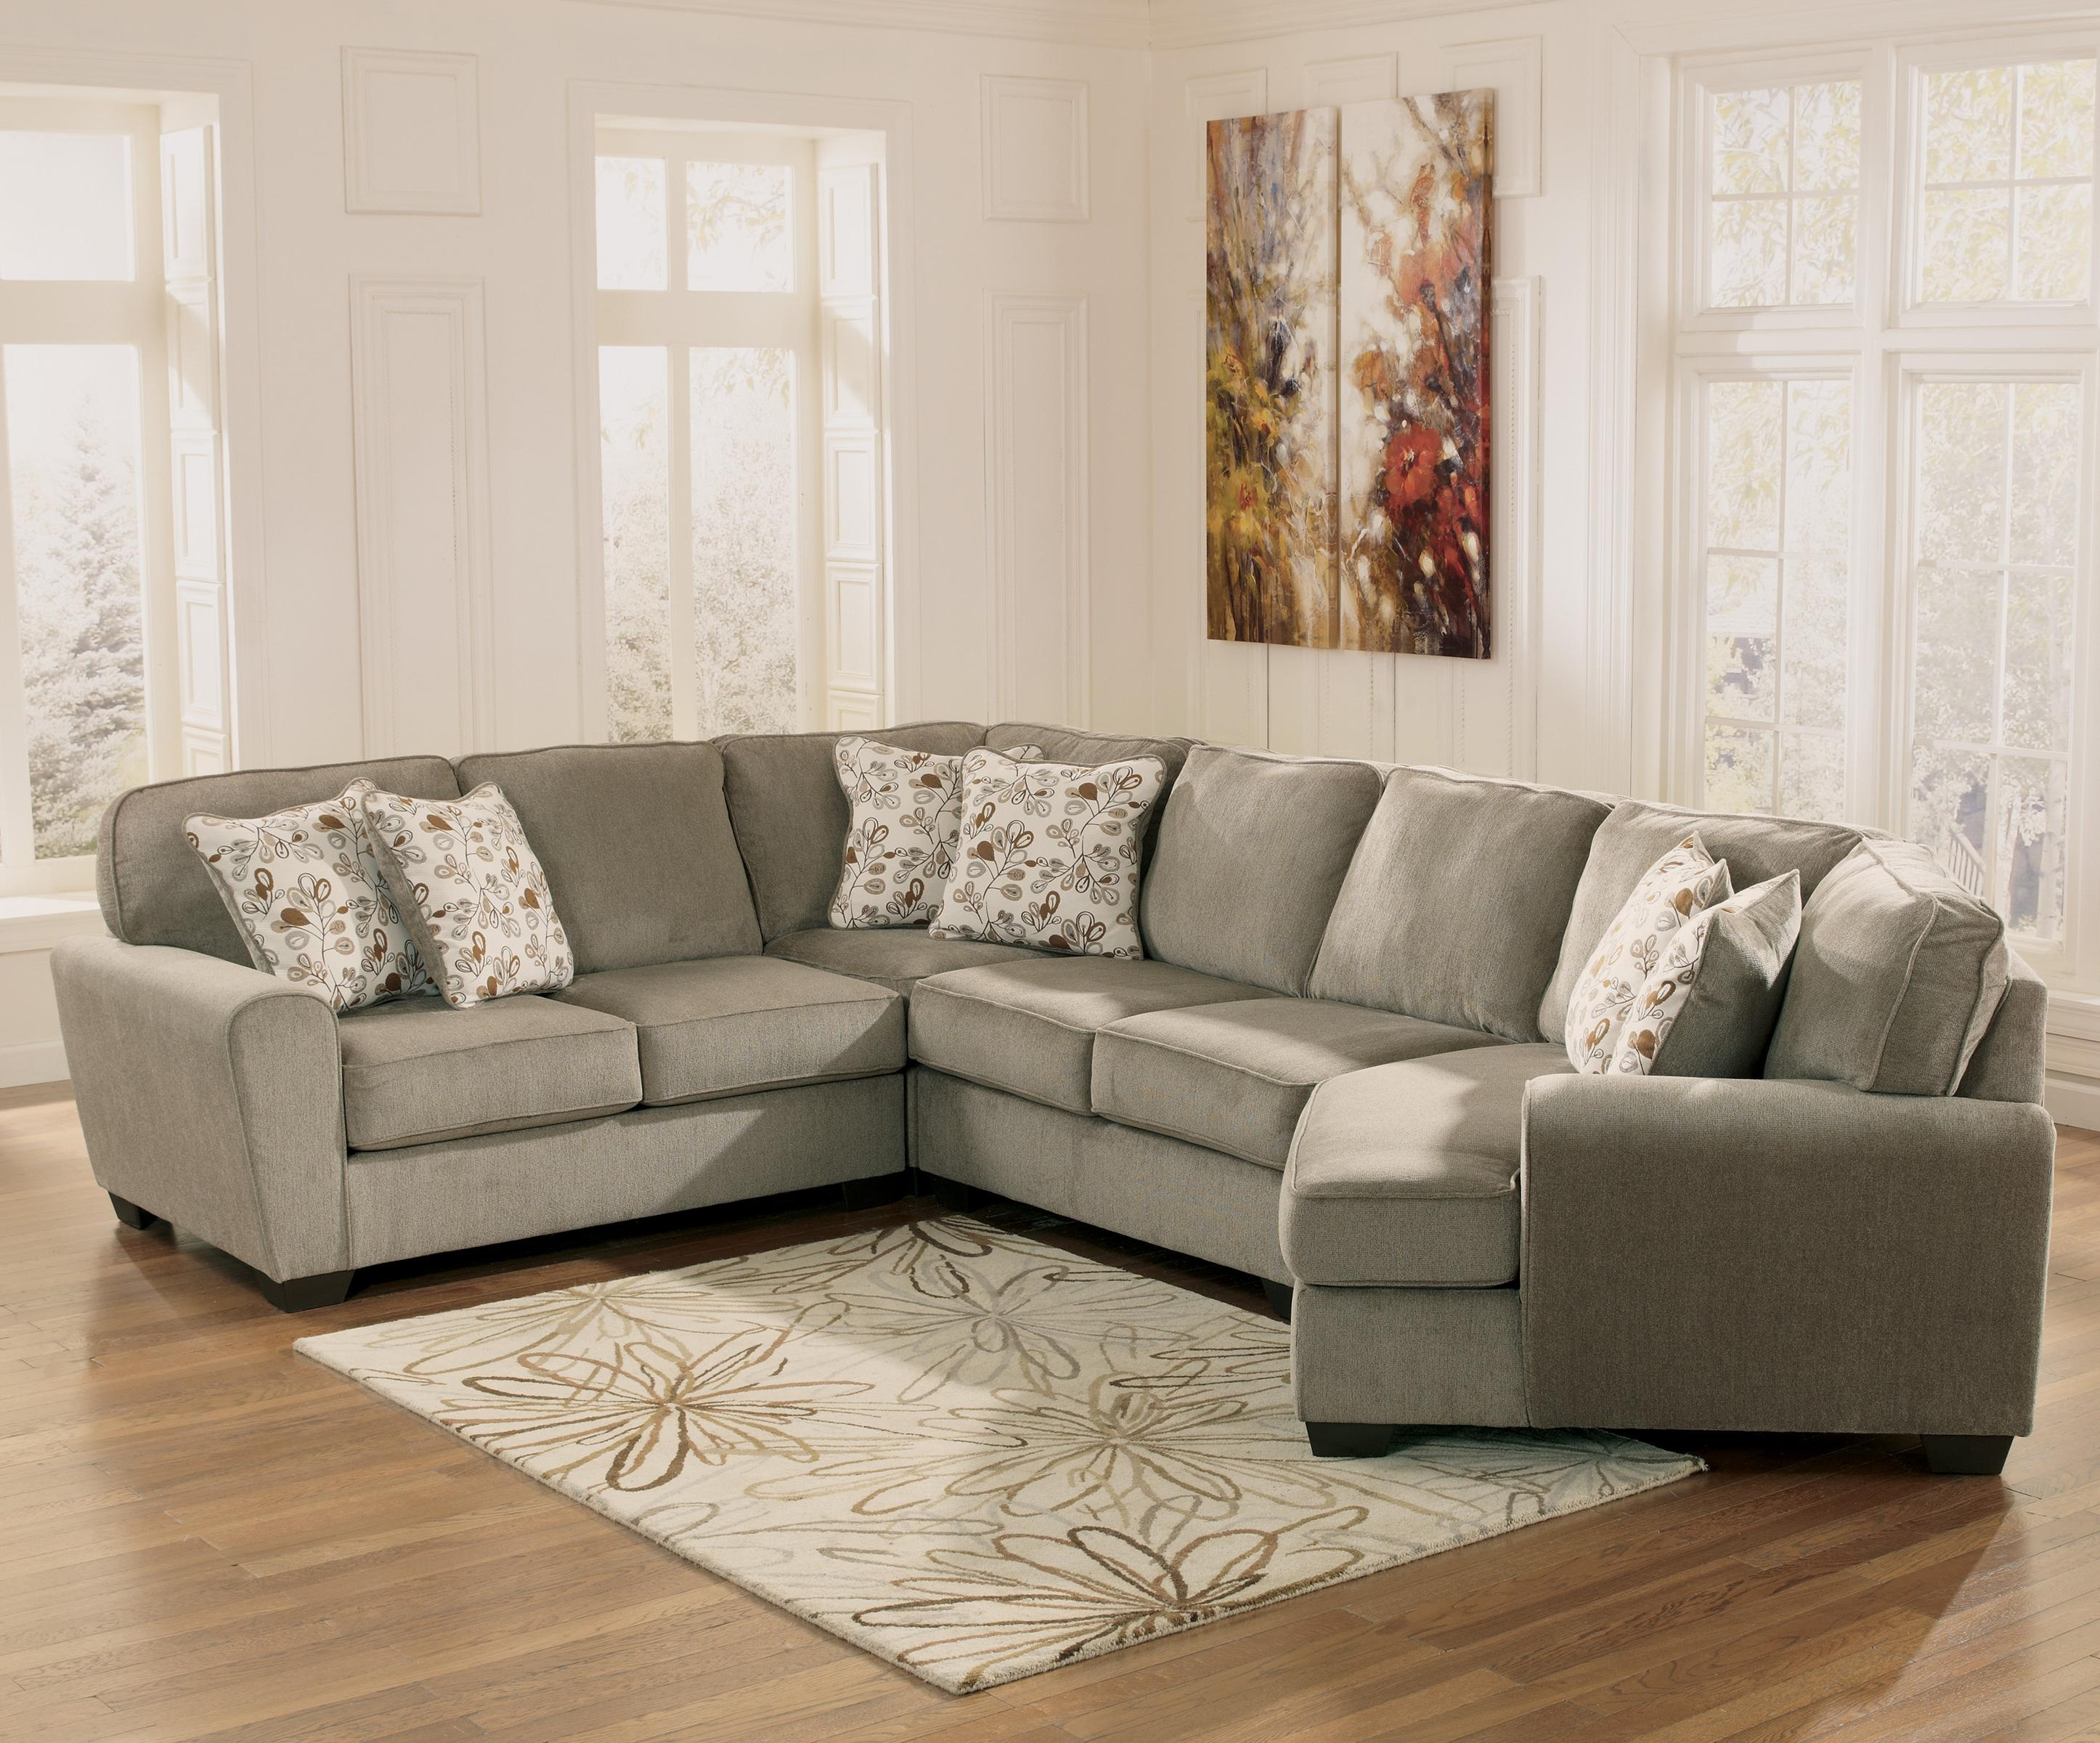 Patina 4 Piece Small Sectional With Right Cuddler Rotmans Sofa With Regard To Cuddler Sectional Sofa (Image 11 of 15)